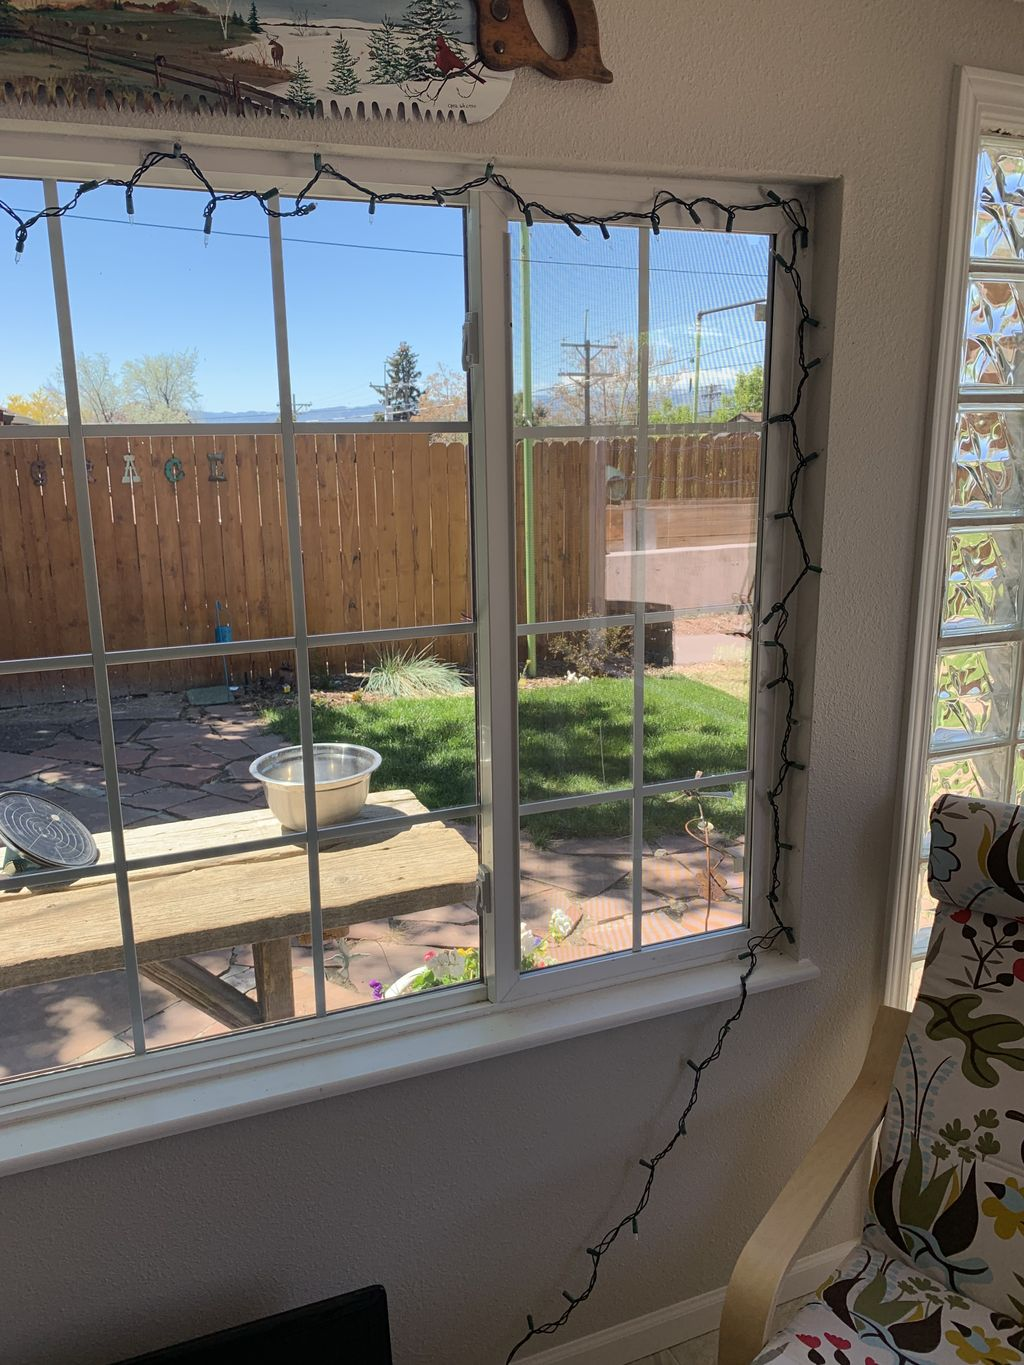 Window Repair - Denver 2019